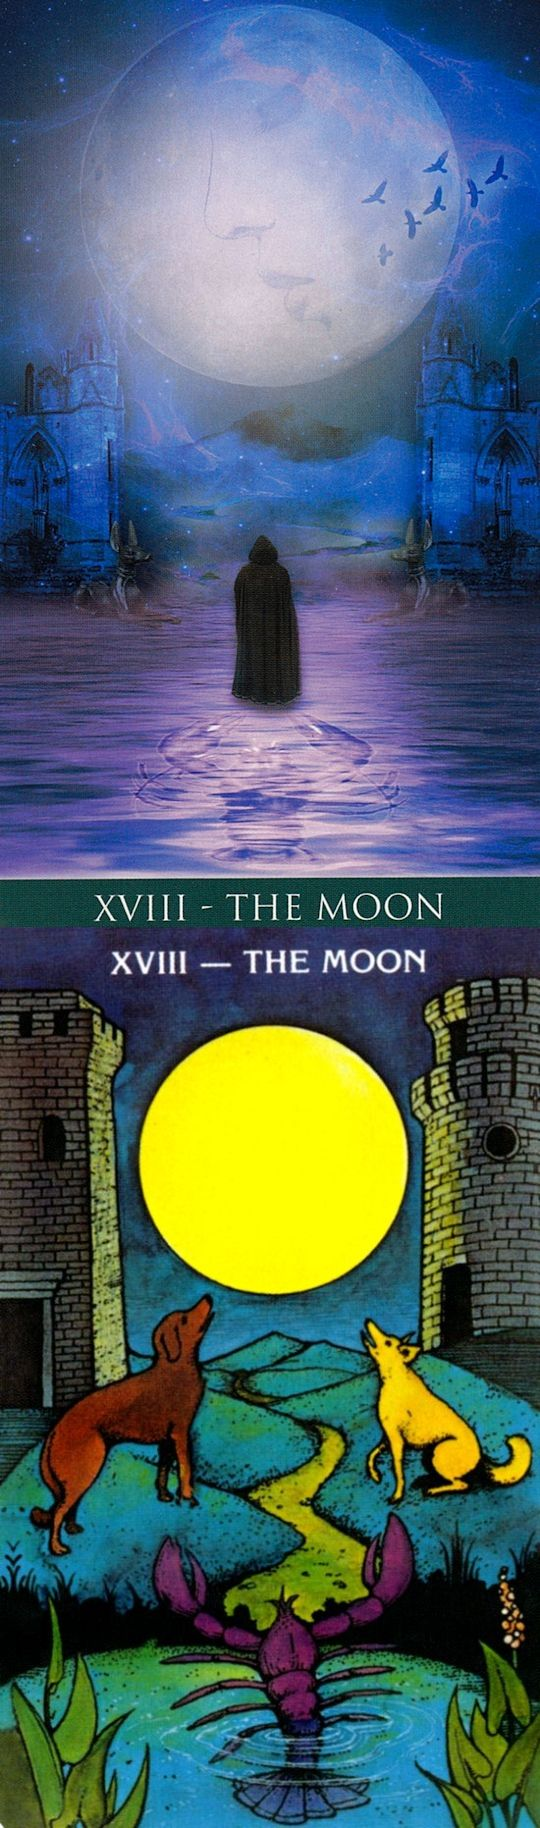 THE MOON: unconscious and confusion (reverse). Thelema Tarot deck and Morgan Tarot deck: tarotfor beginners, tarot generator vs free daily tarot card reading online. New witch art and paganism beliefs. #halloweenparty #temperance #Wiccan #tarotcardsforbeginners